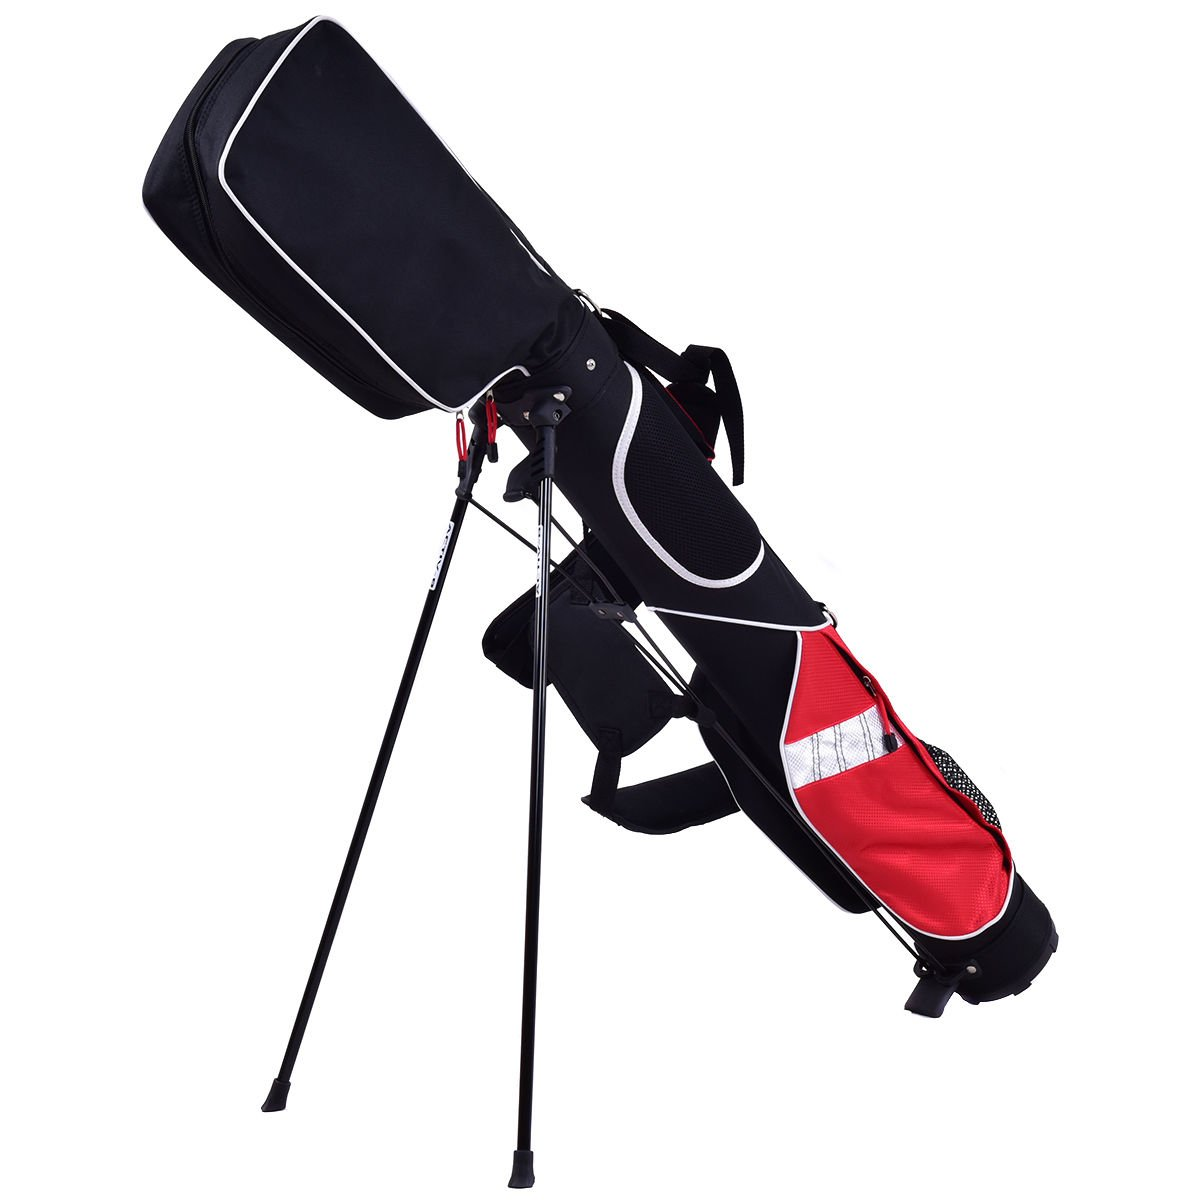 TANGKULA 5'' Golf Bag Club 7 Dividers Lightweight Carry Bag Golf Stand Bag